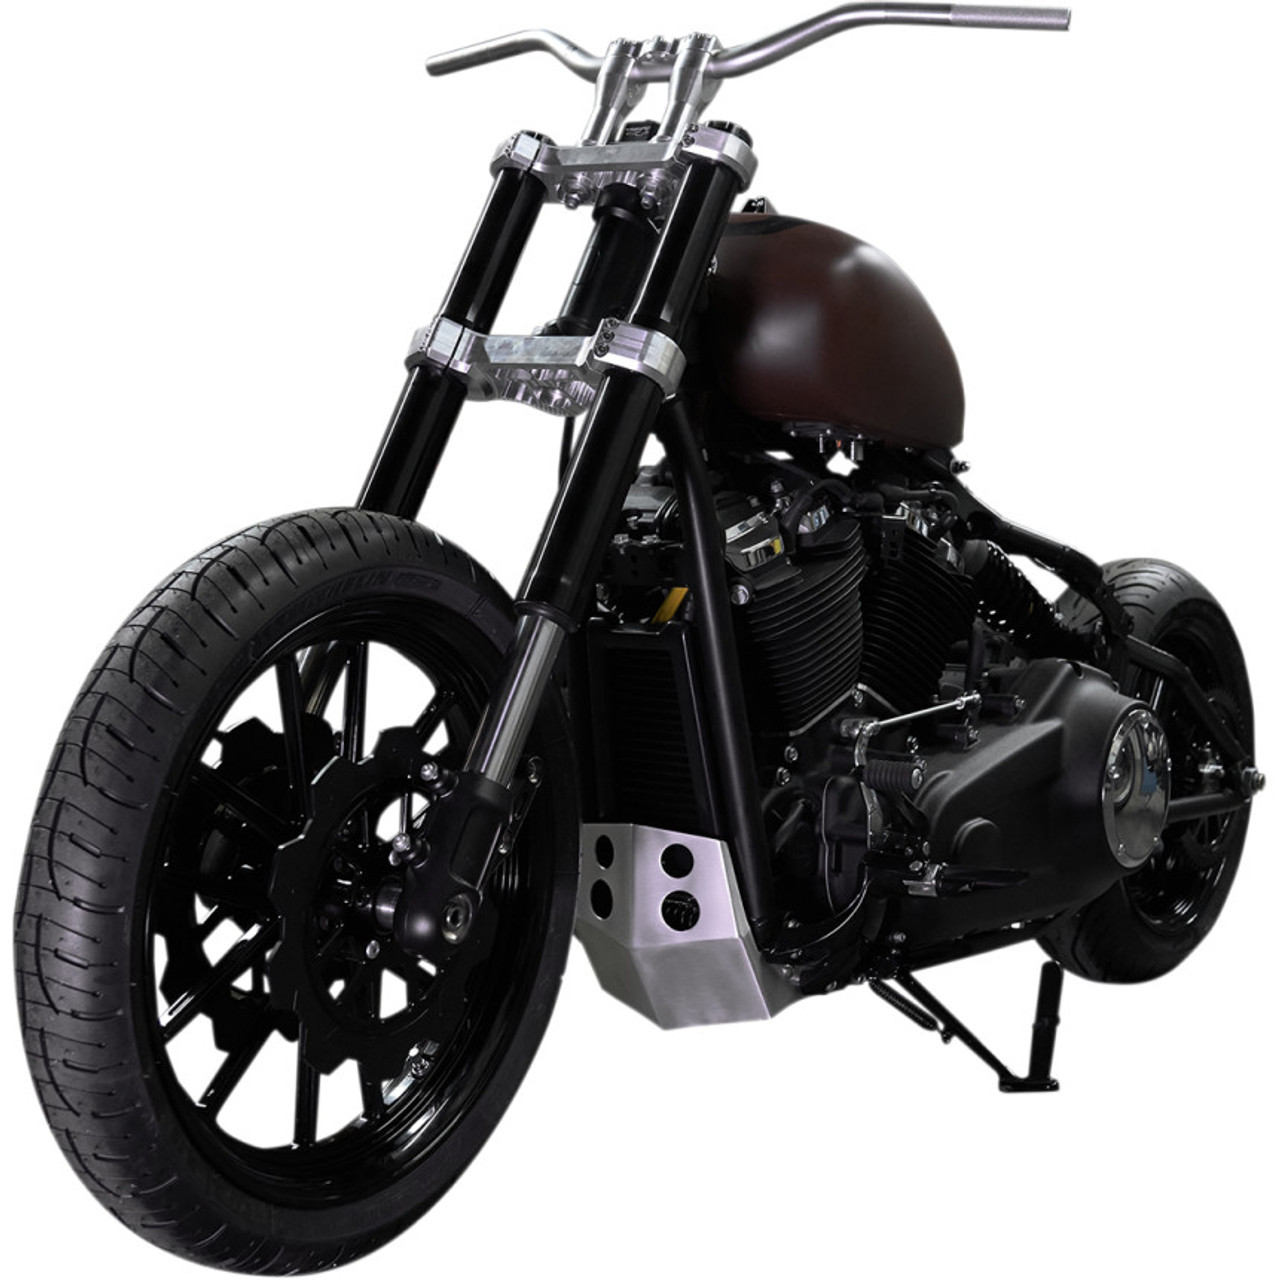 Speed Merchant Skid Plate for 2018 Harley Softail - Brushed - SM ...